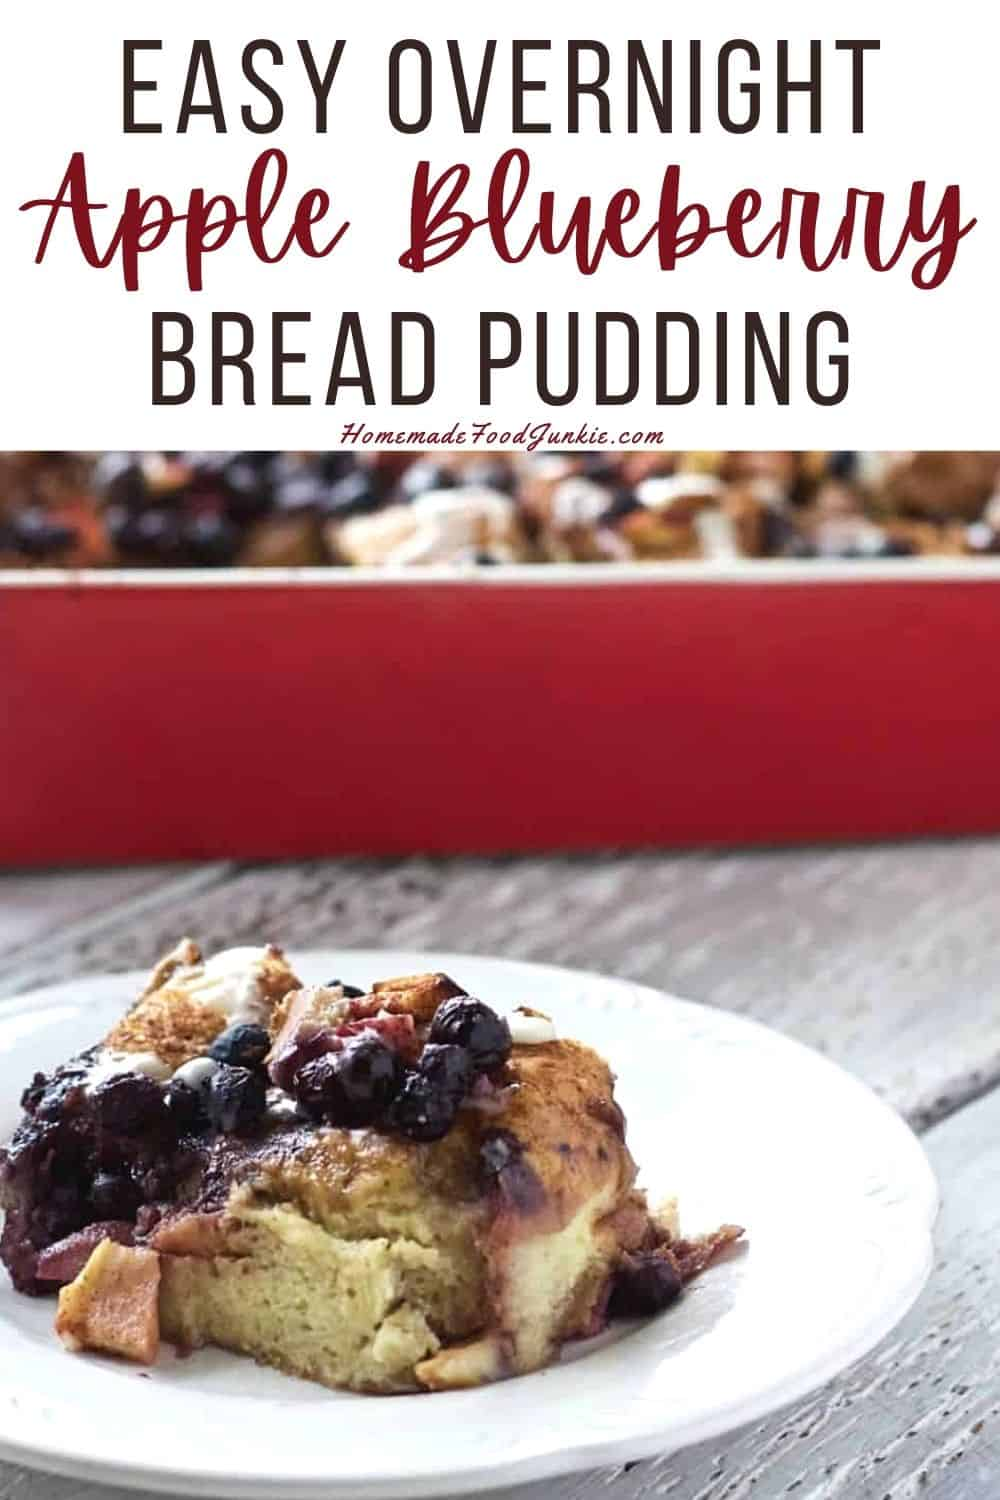 Easy overnight apple blueberry bread pudding-pin image